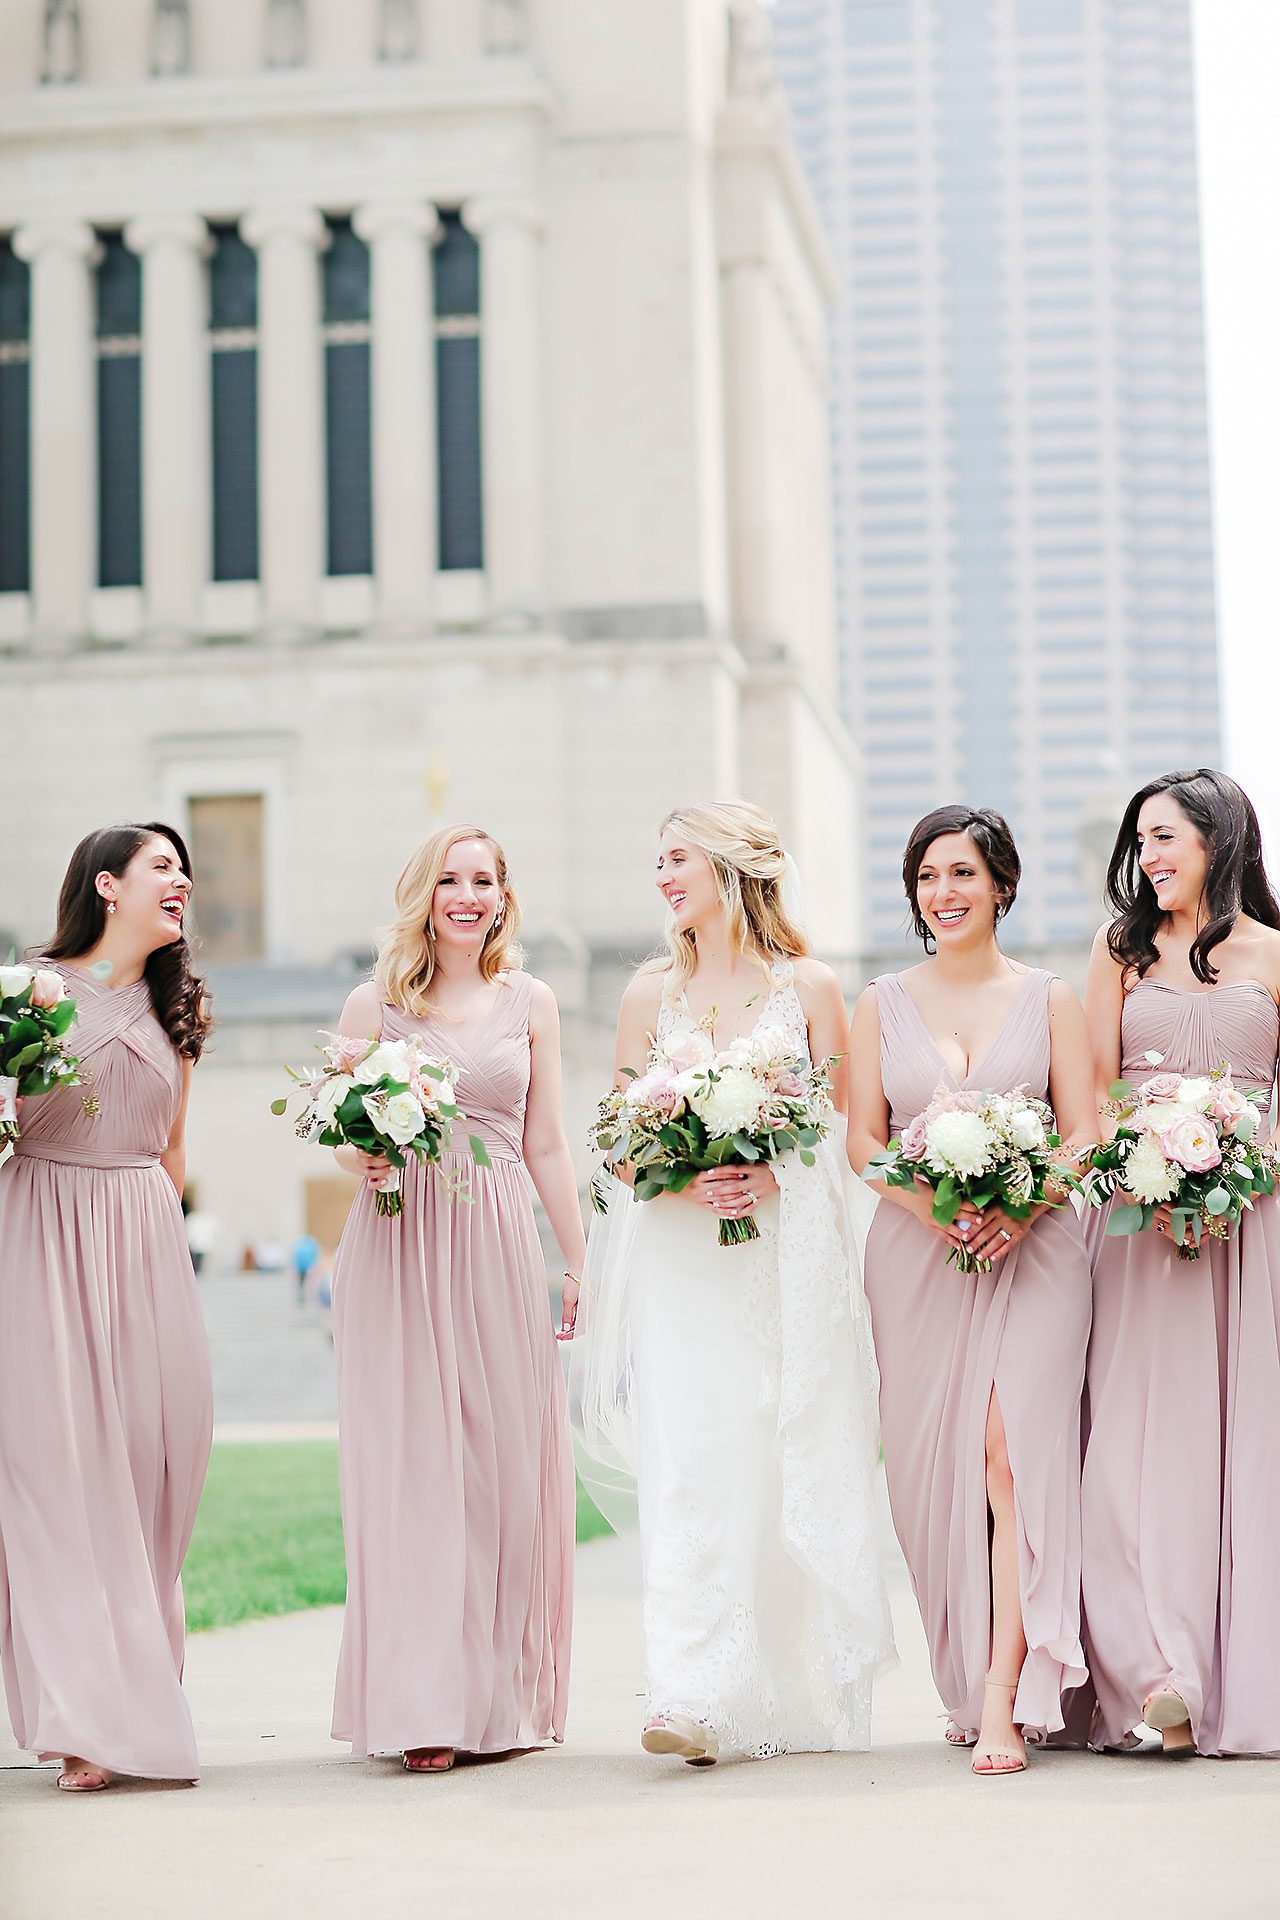 Allison Jeff Union Station Crowne Plaza Indianapolis wedding 172